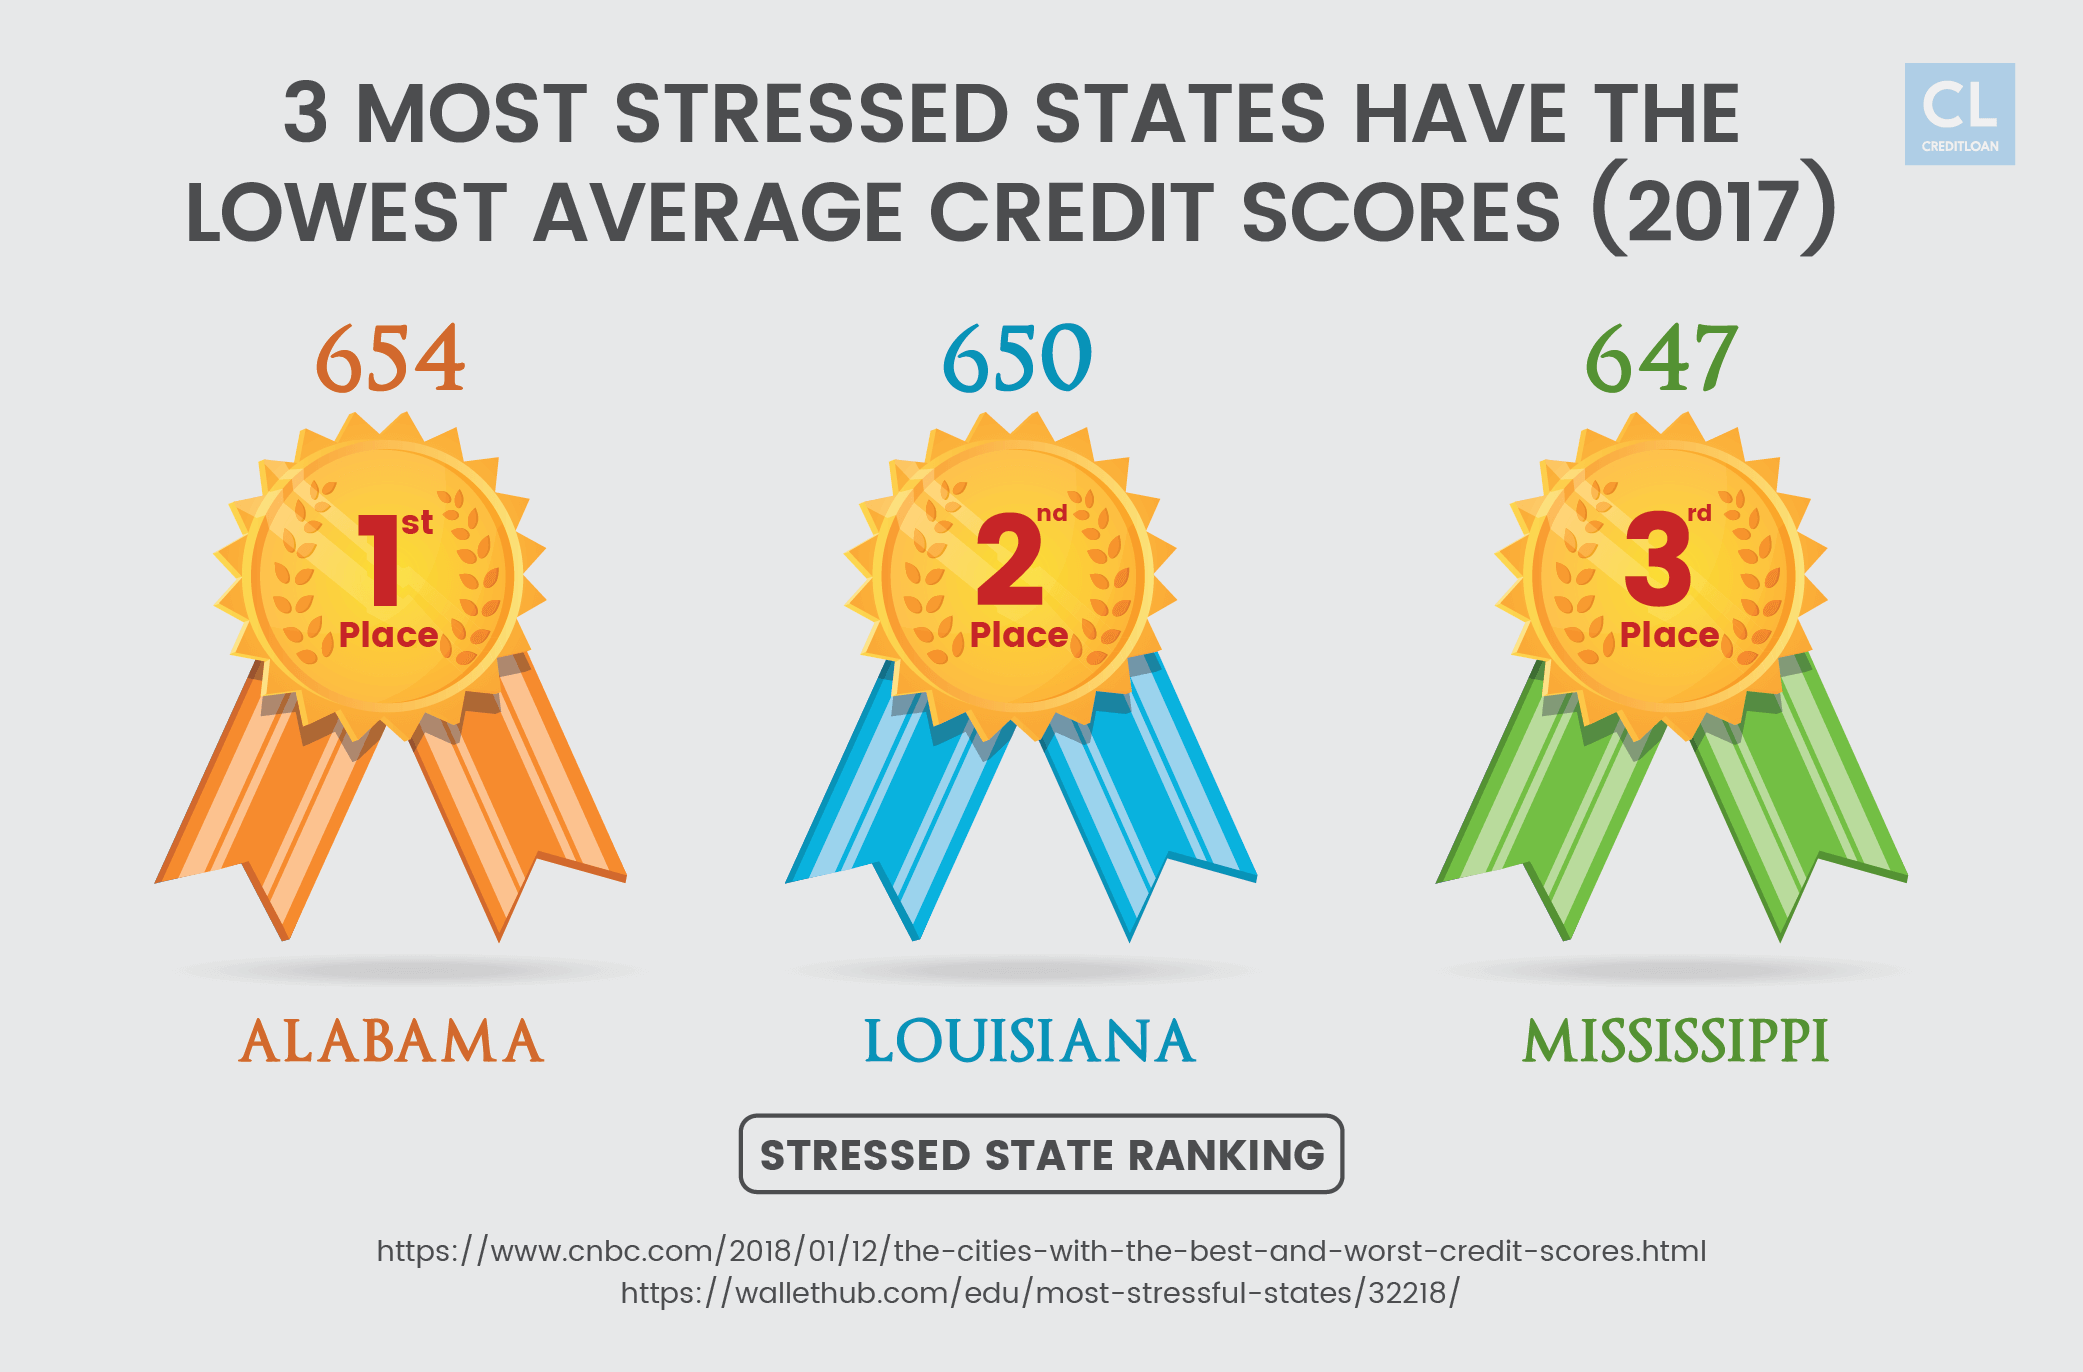 3 Most Stressed States Have the Lowest Average Credit Scores (2017)